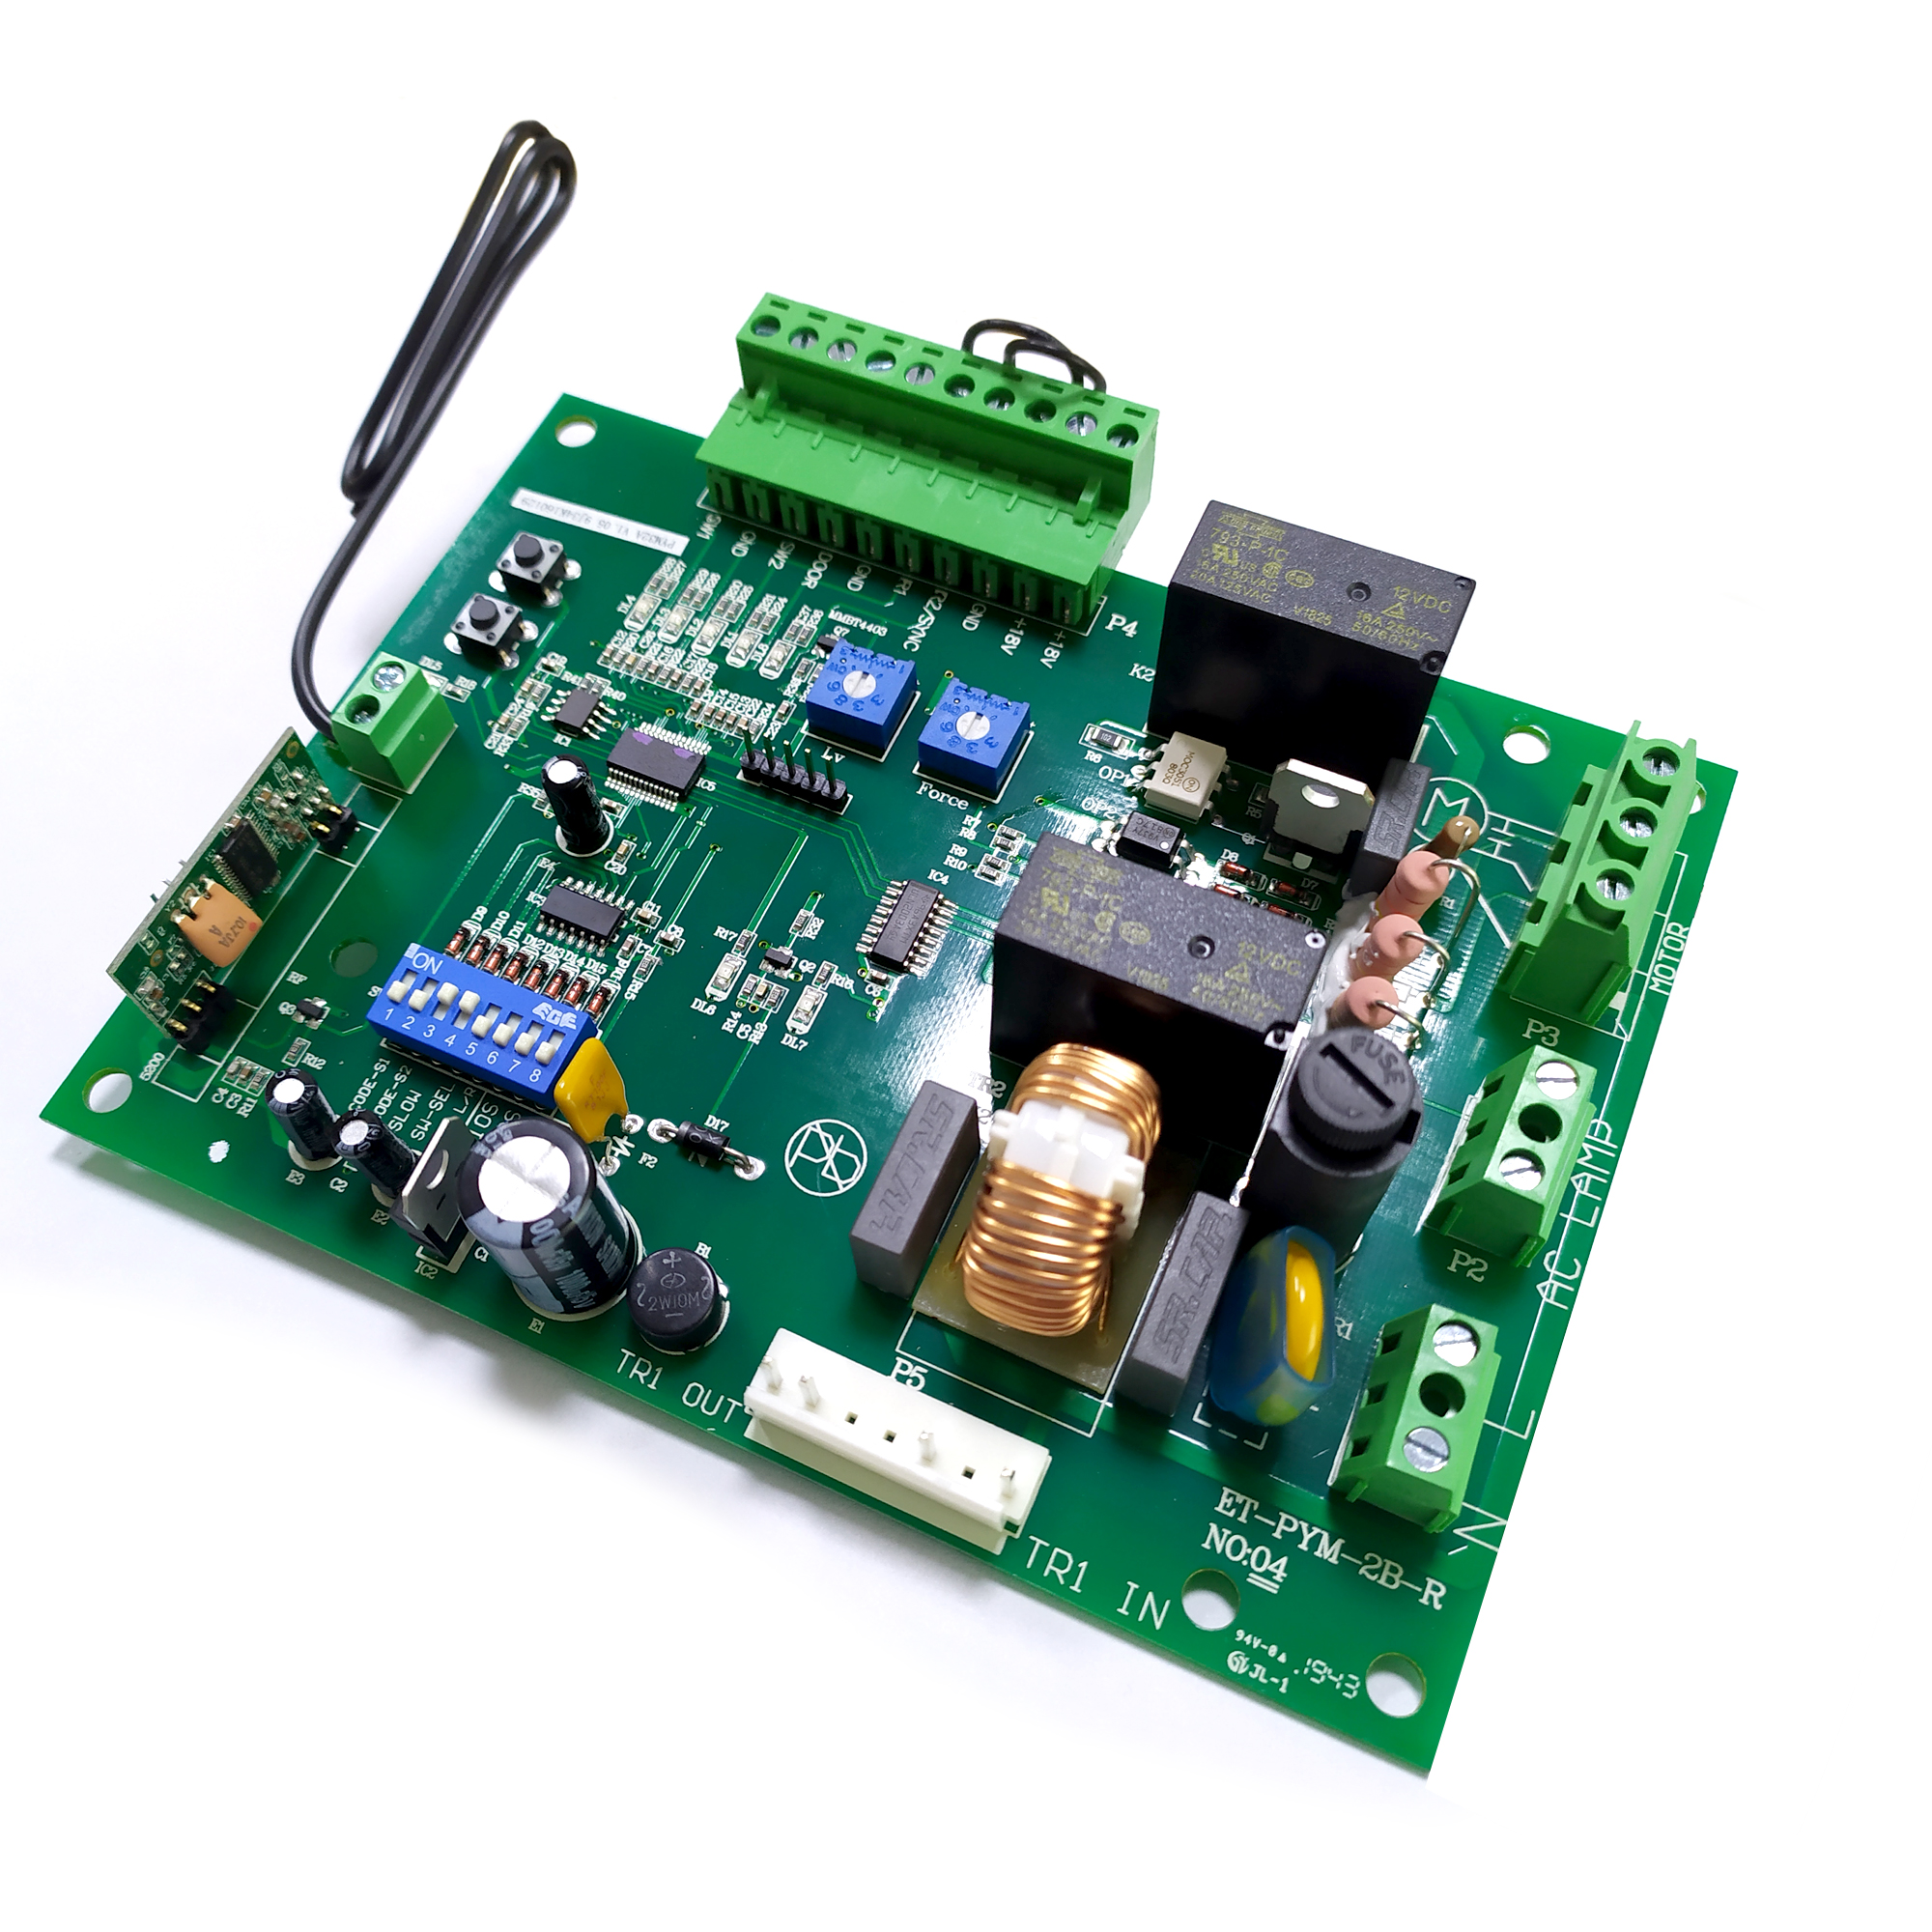 Foresee Sliding Gate Opener Electronic PCB Automatic Motor Garage Door Opener Closers Circuit Board